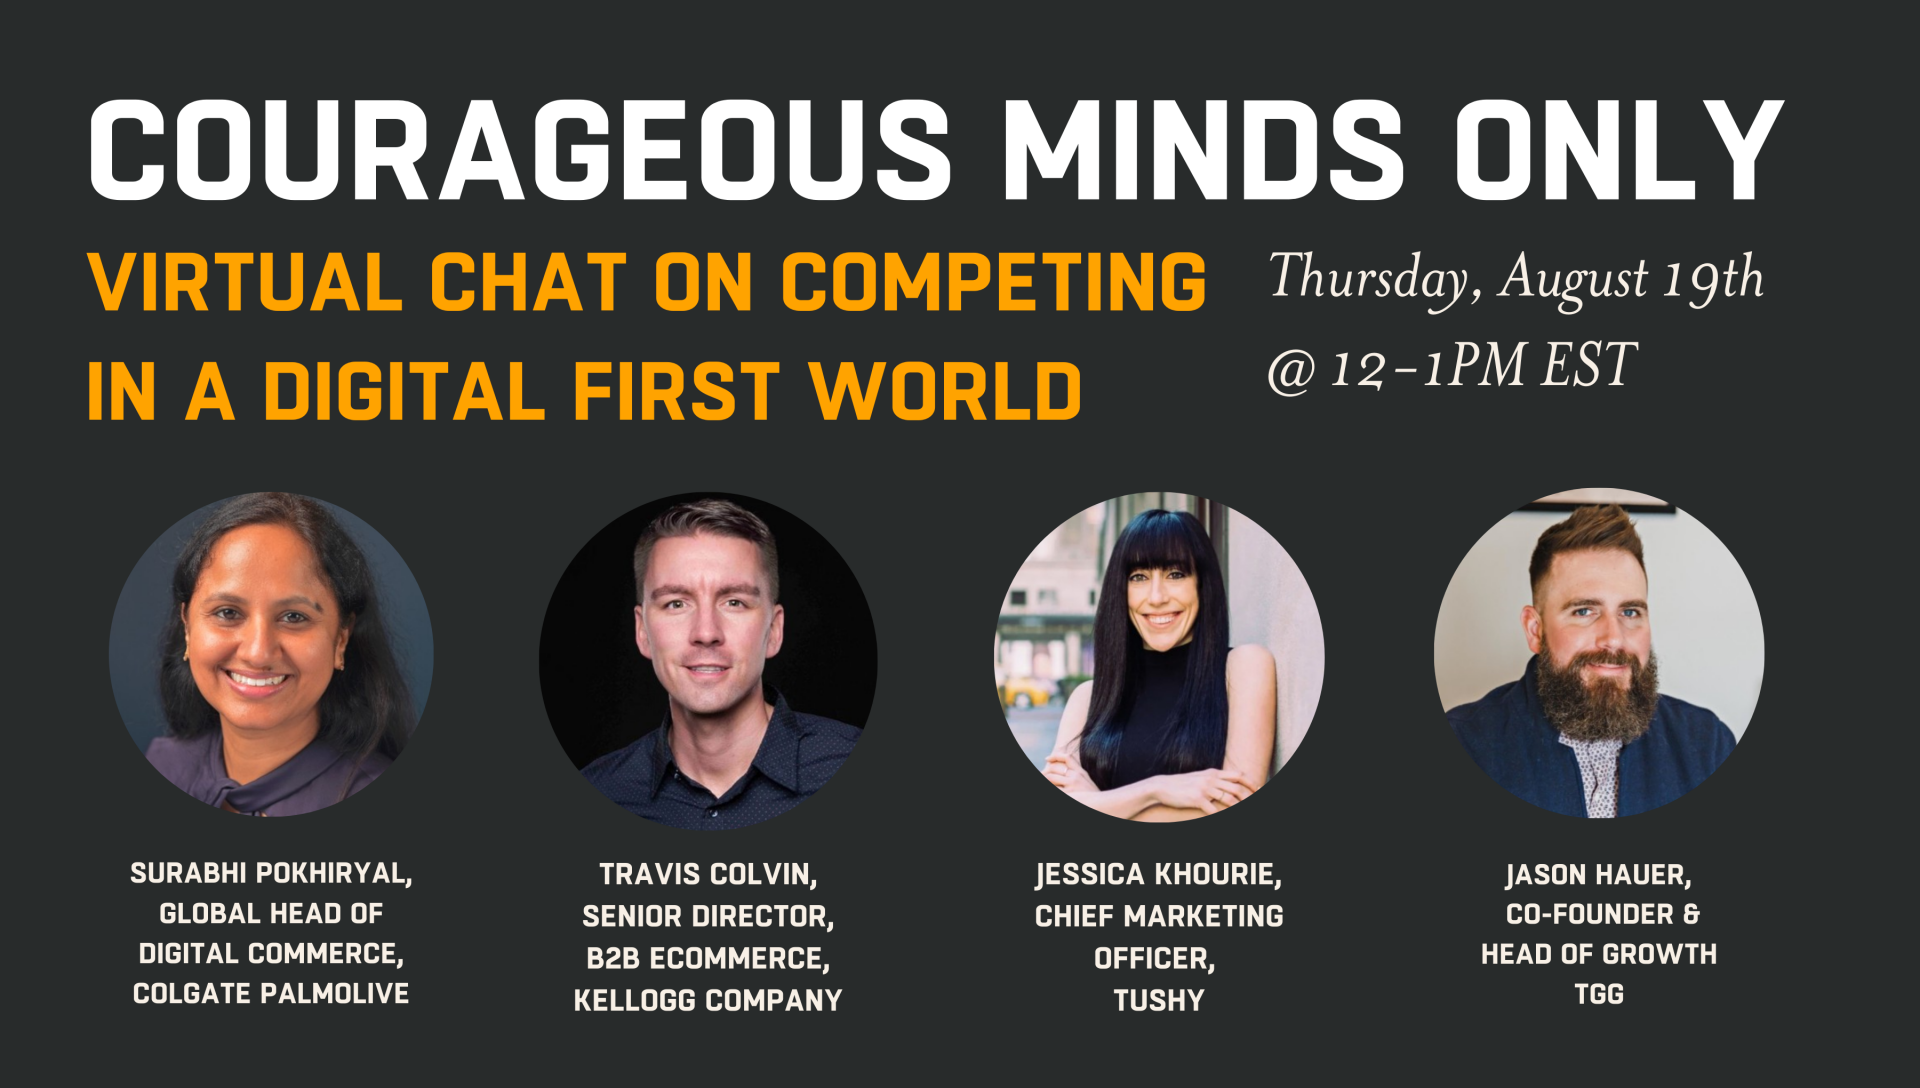 Courageous Minds Only Virtual Chat On Competing in A Digital First World